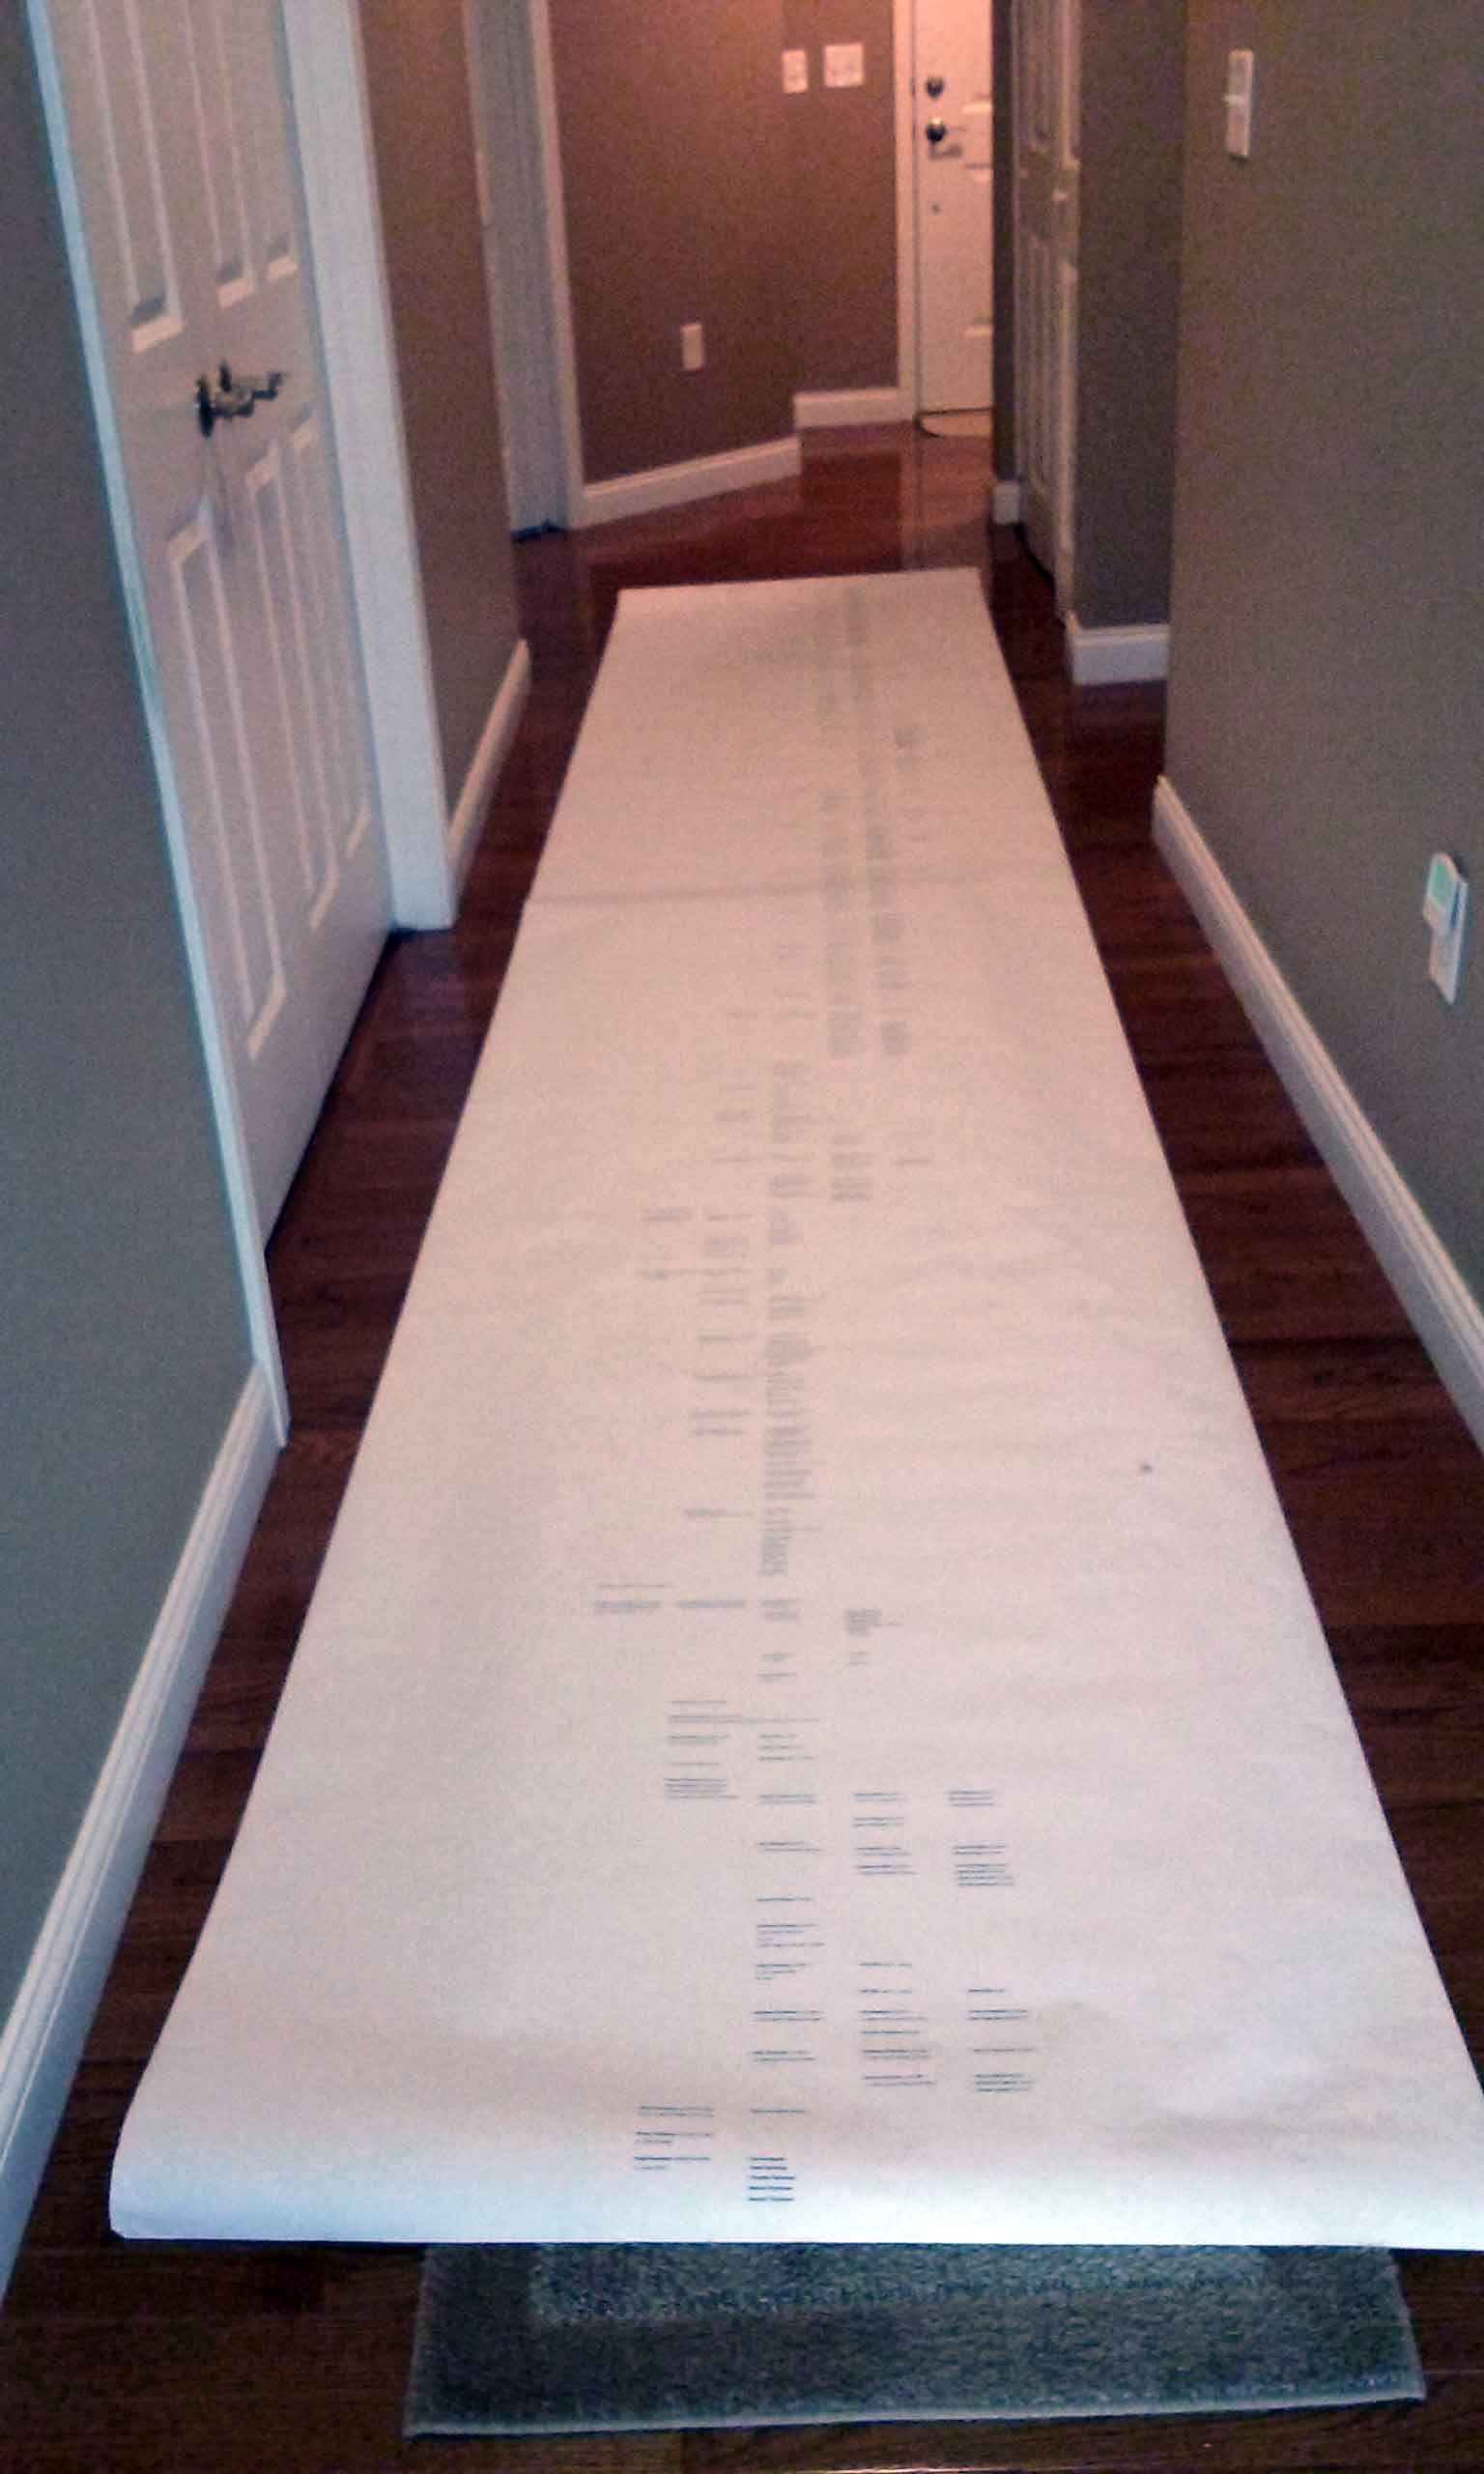 JoAnne's family tree. It contains over 900 names and it is 3ft. wide and 18ft. long.